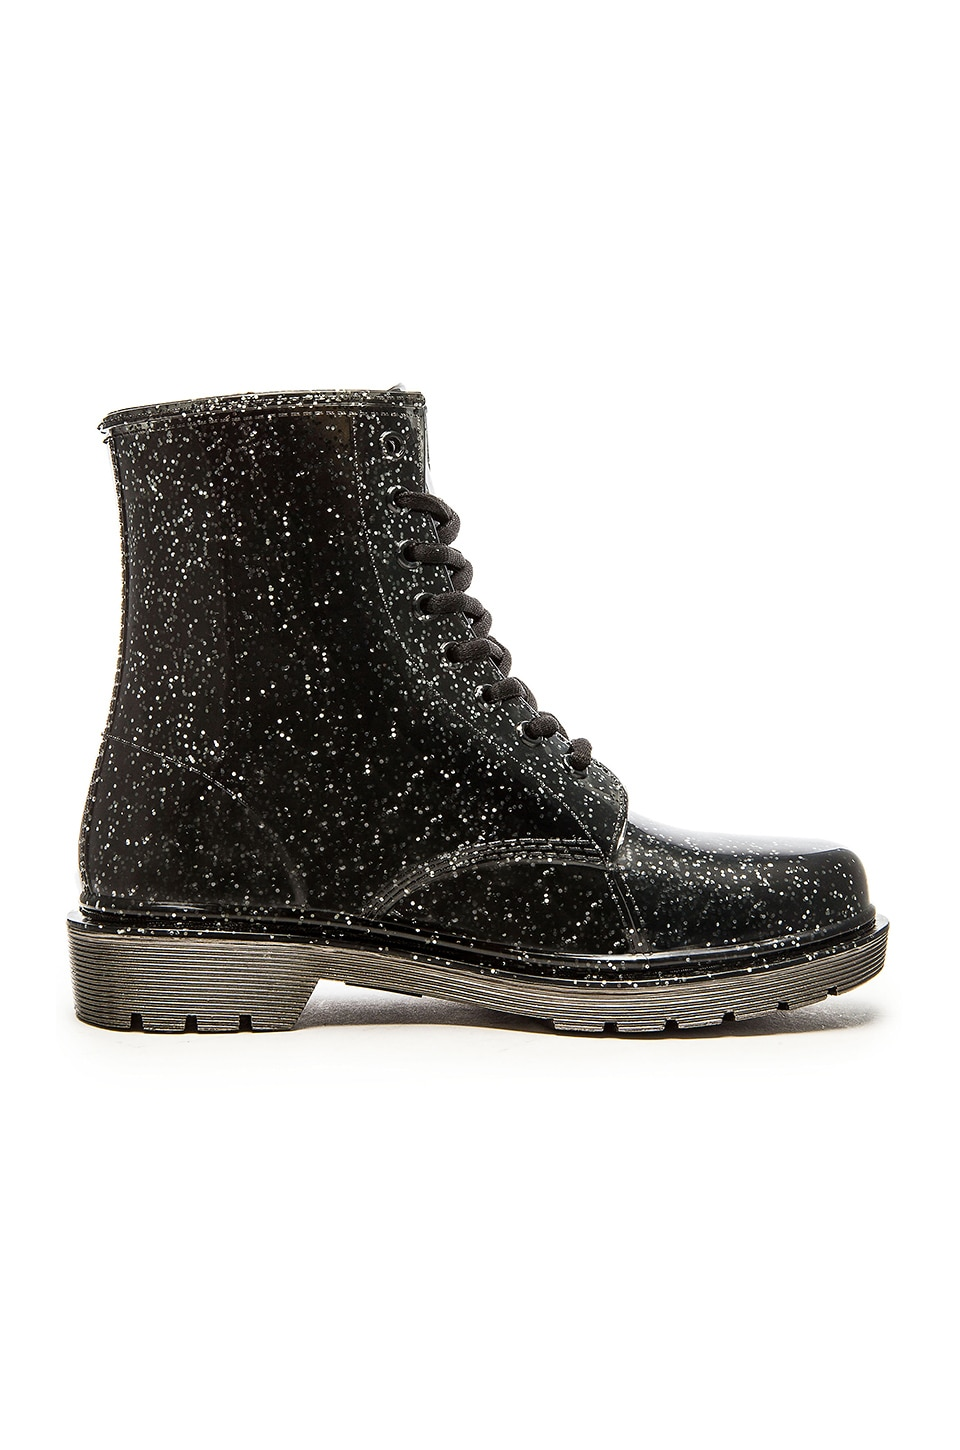 Circus by Sam Edelman Quinn Rain Boot in Translucent Black & Silver Glitter